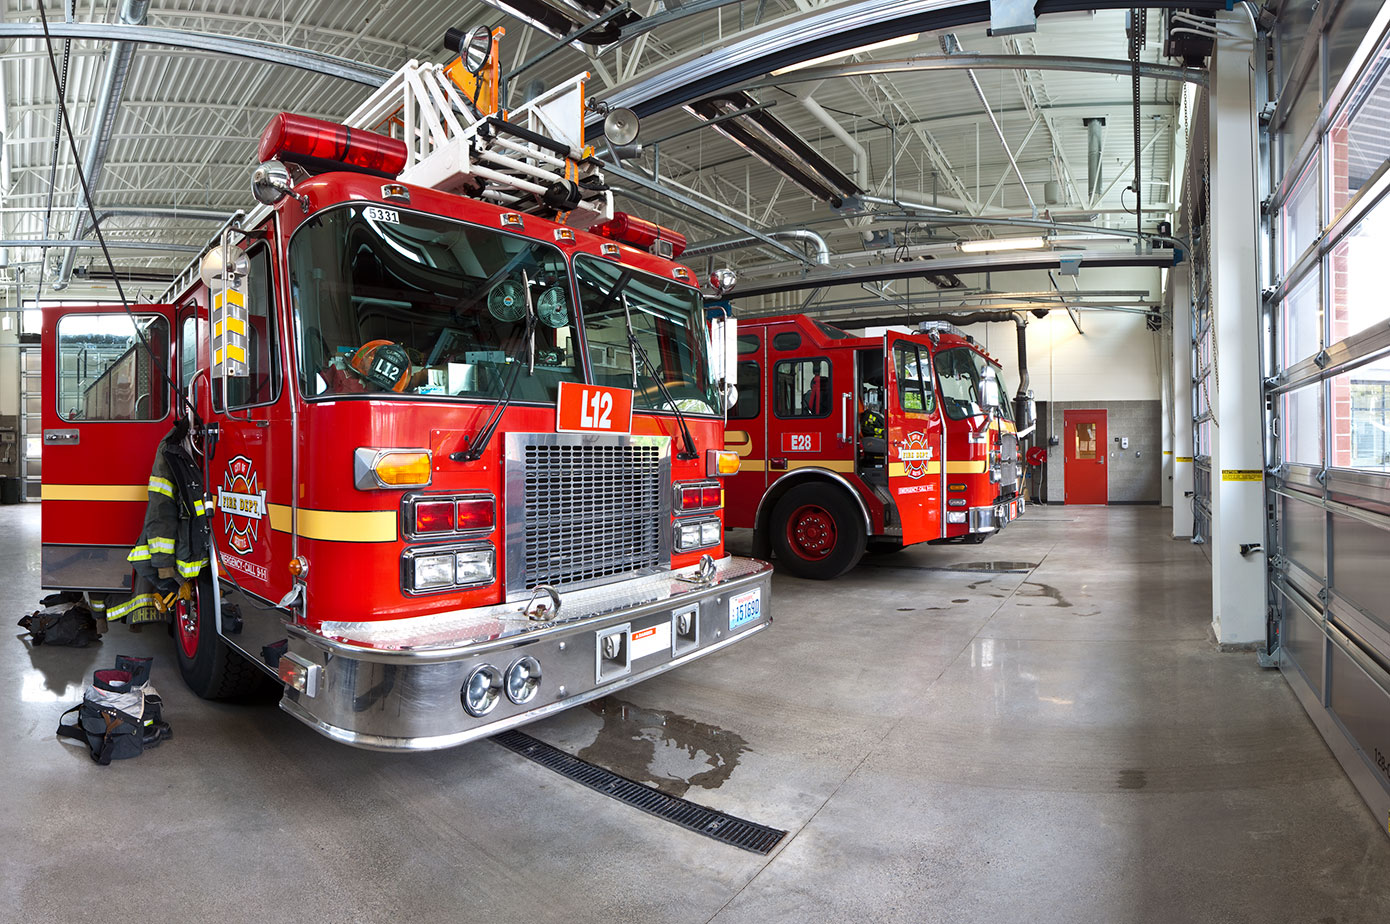 Seattle Fire Station No 28 | Forma